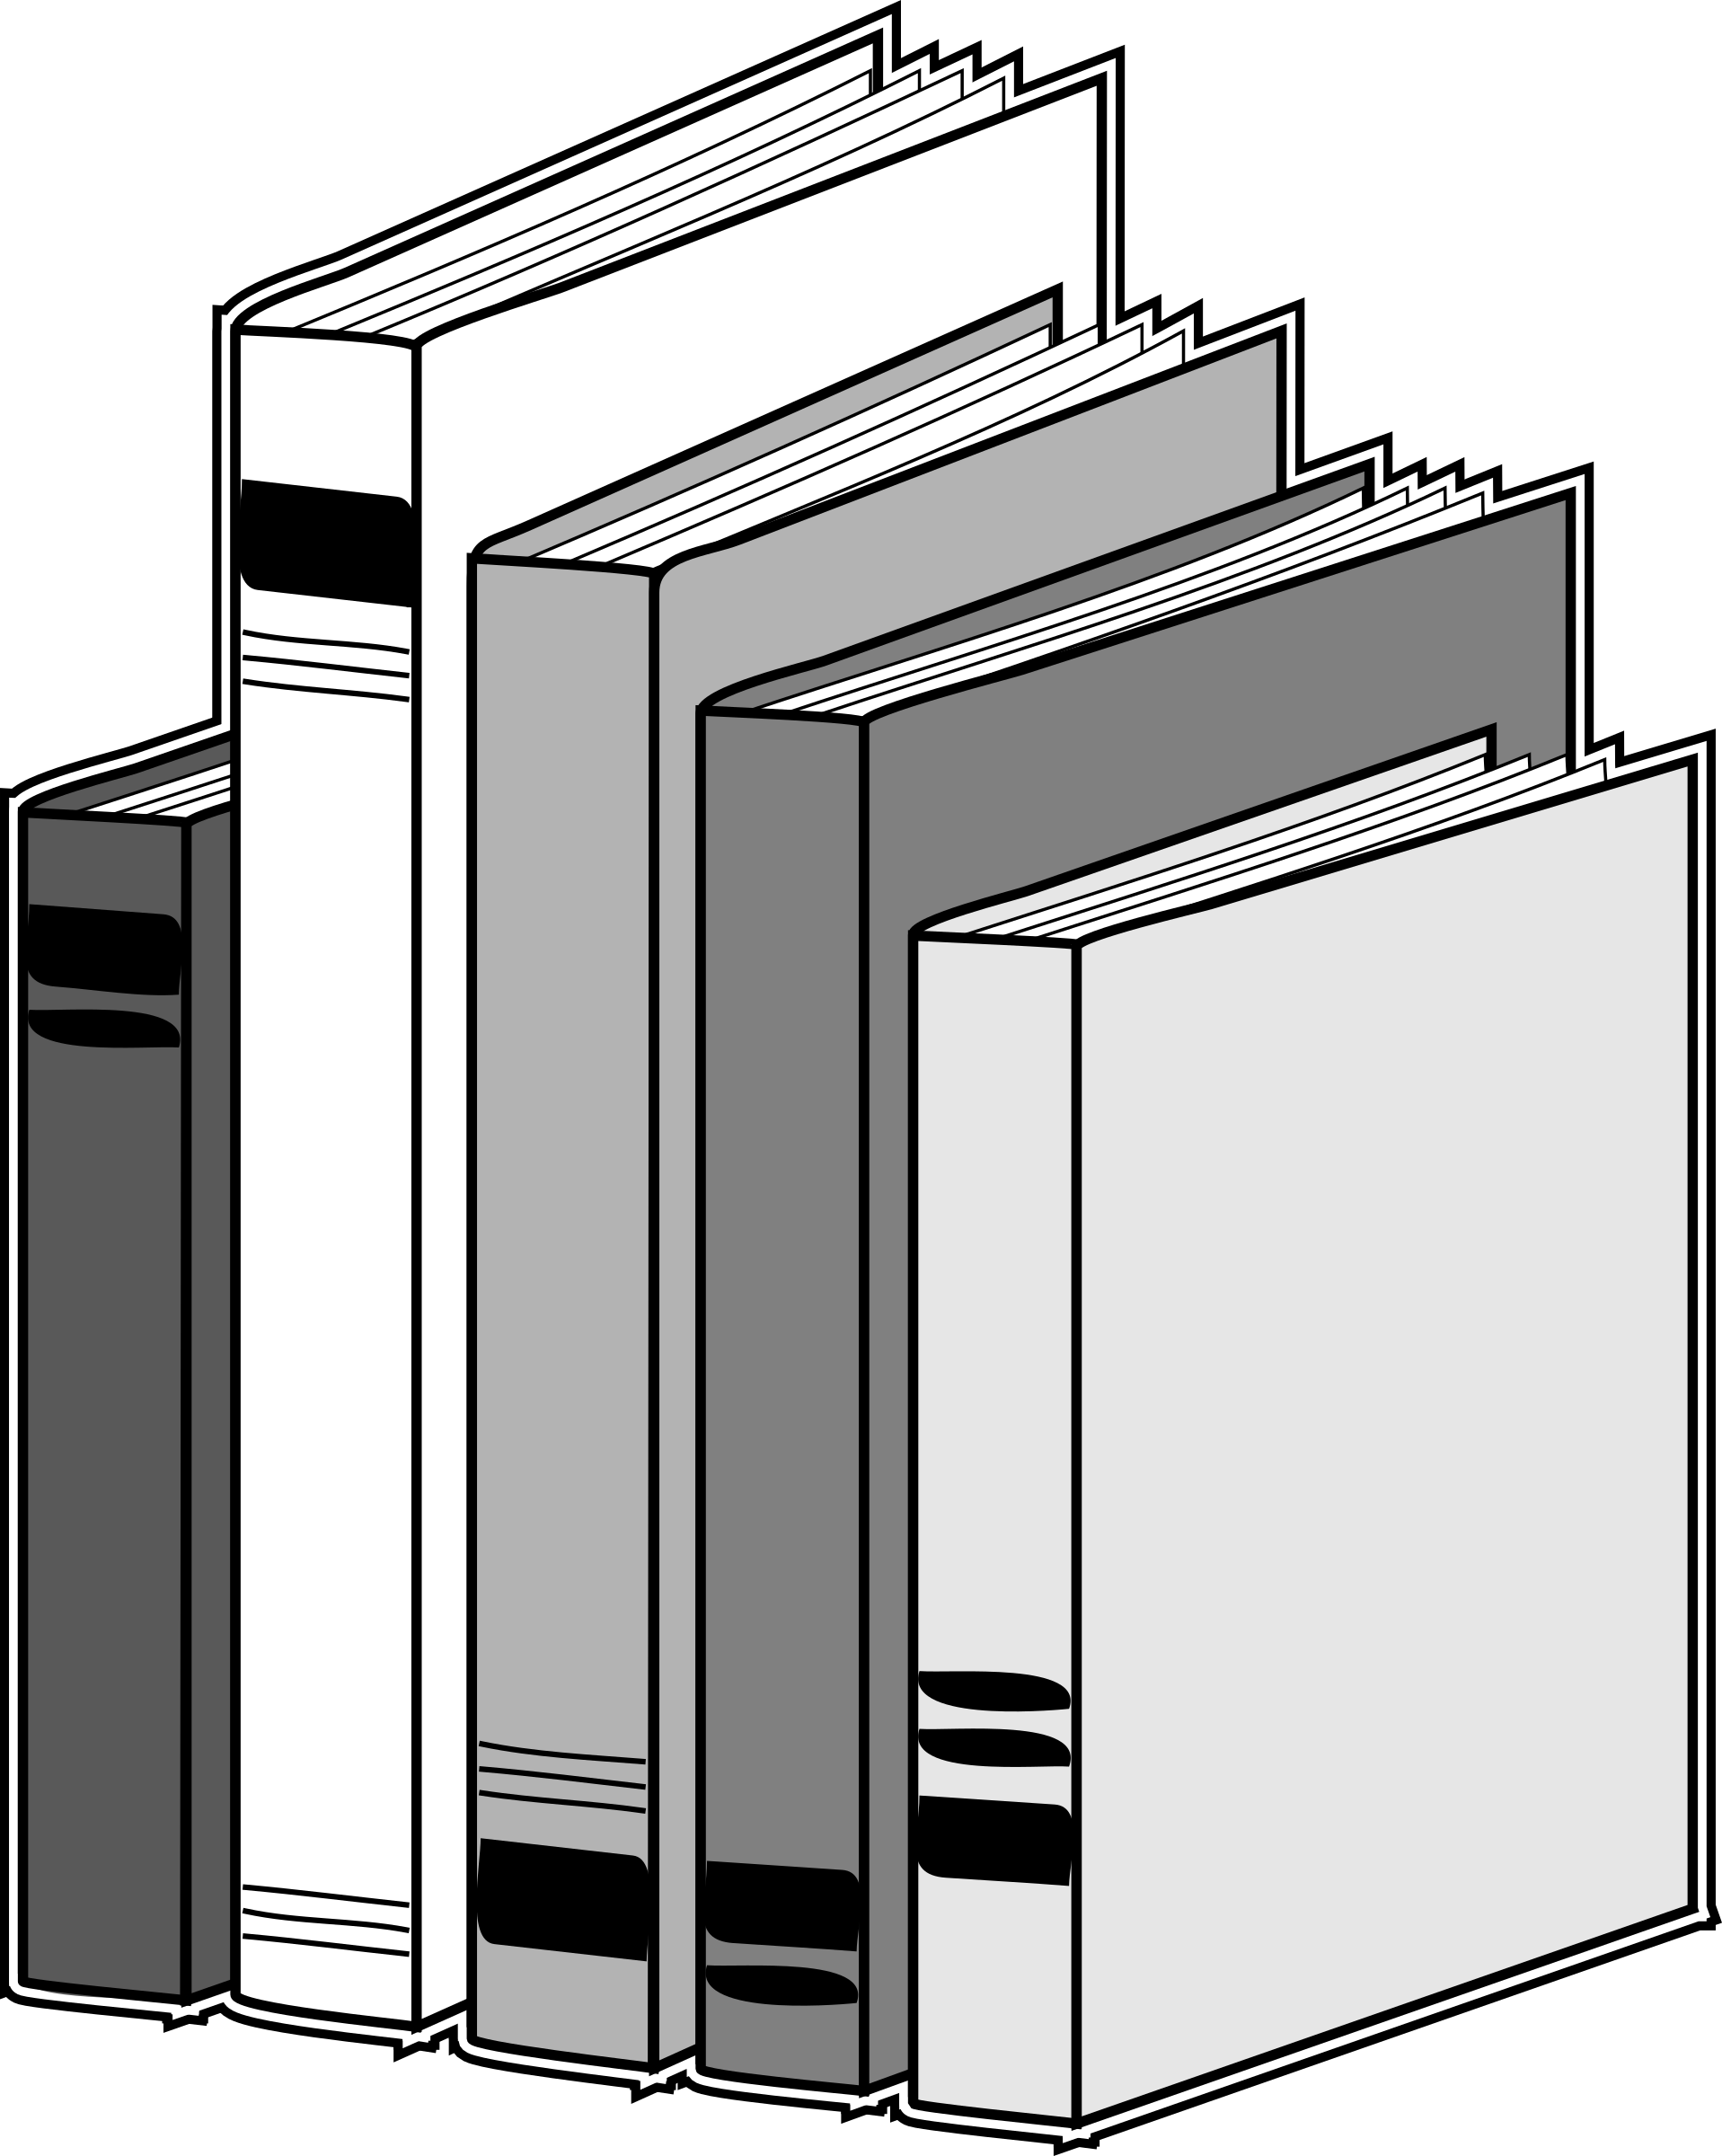 Book shelf clipart graphic royalty free stock Clipart - Architetto -- Bibliografia graphic royalty free stock